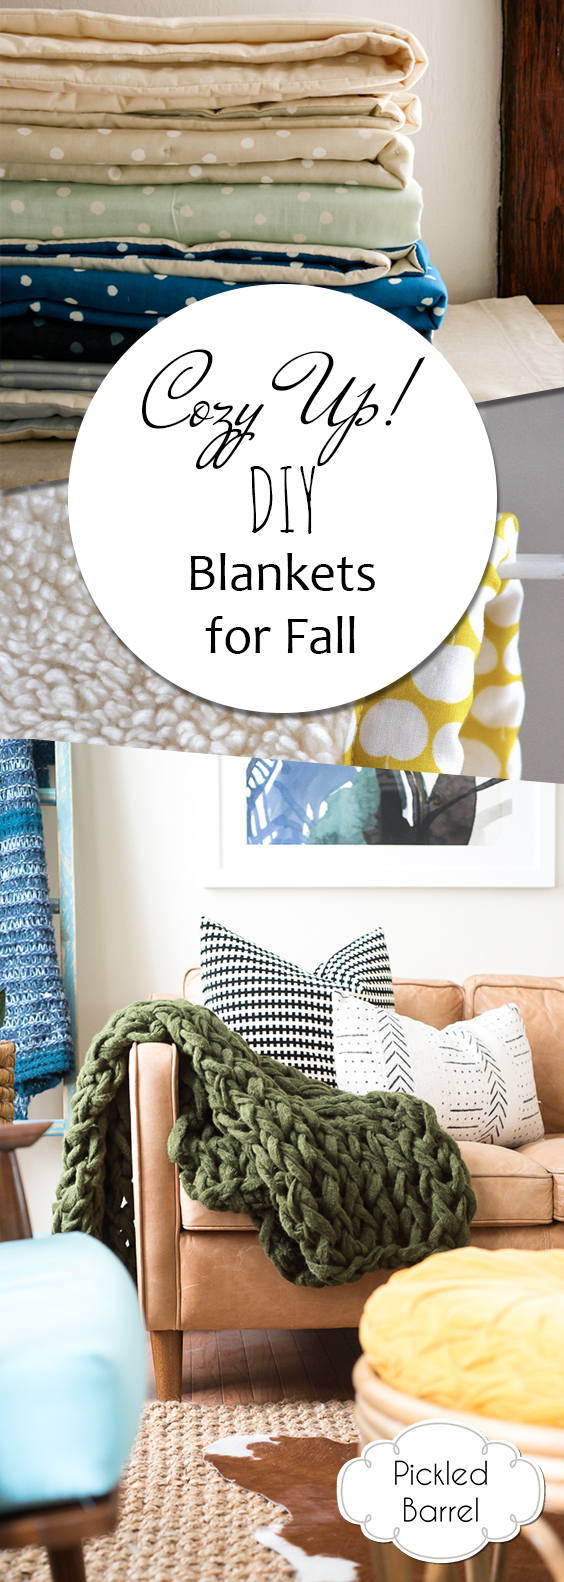 DIY Blankets, Blankets for Fall, DIY Blankets for Fall, DIY Home, DIY Projects, Crafts, Craft Projects, Simple Craft Projects